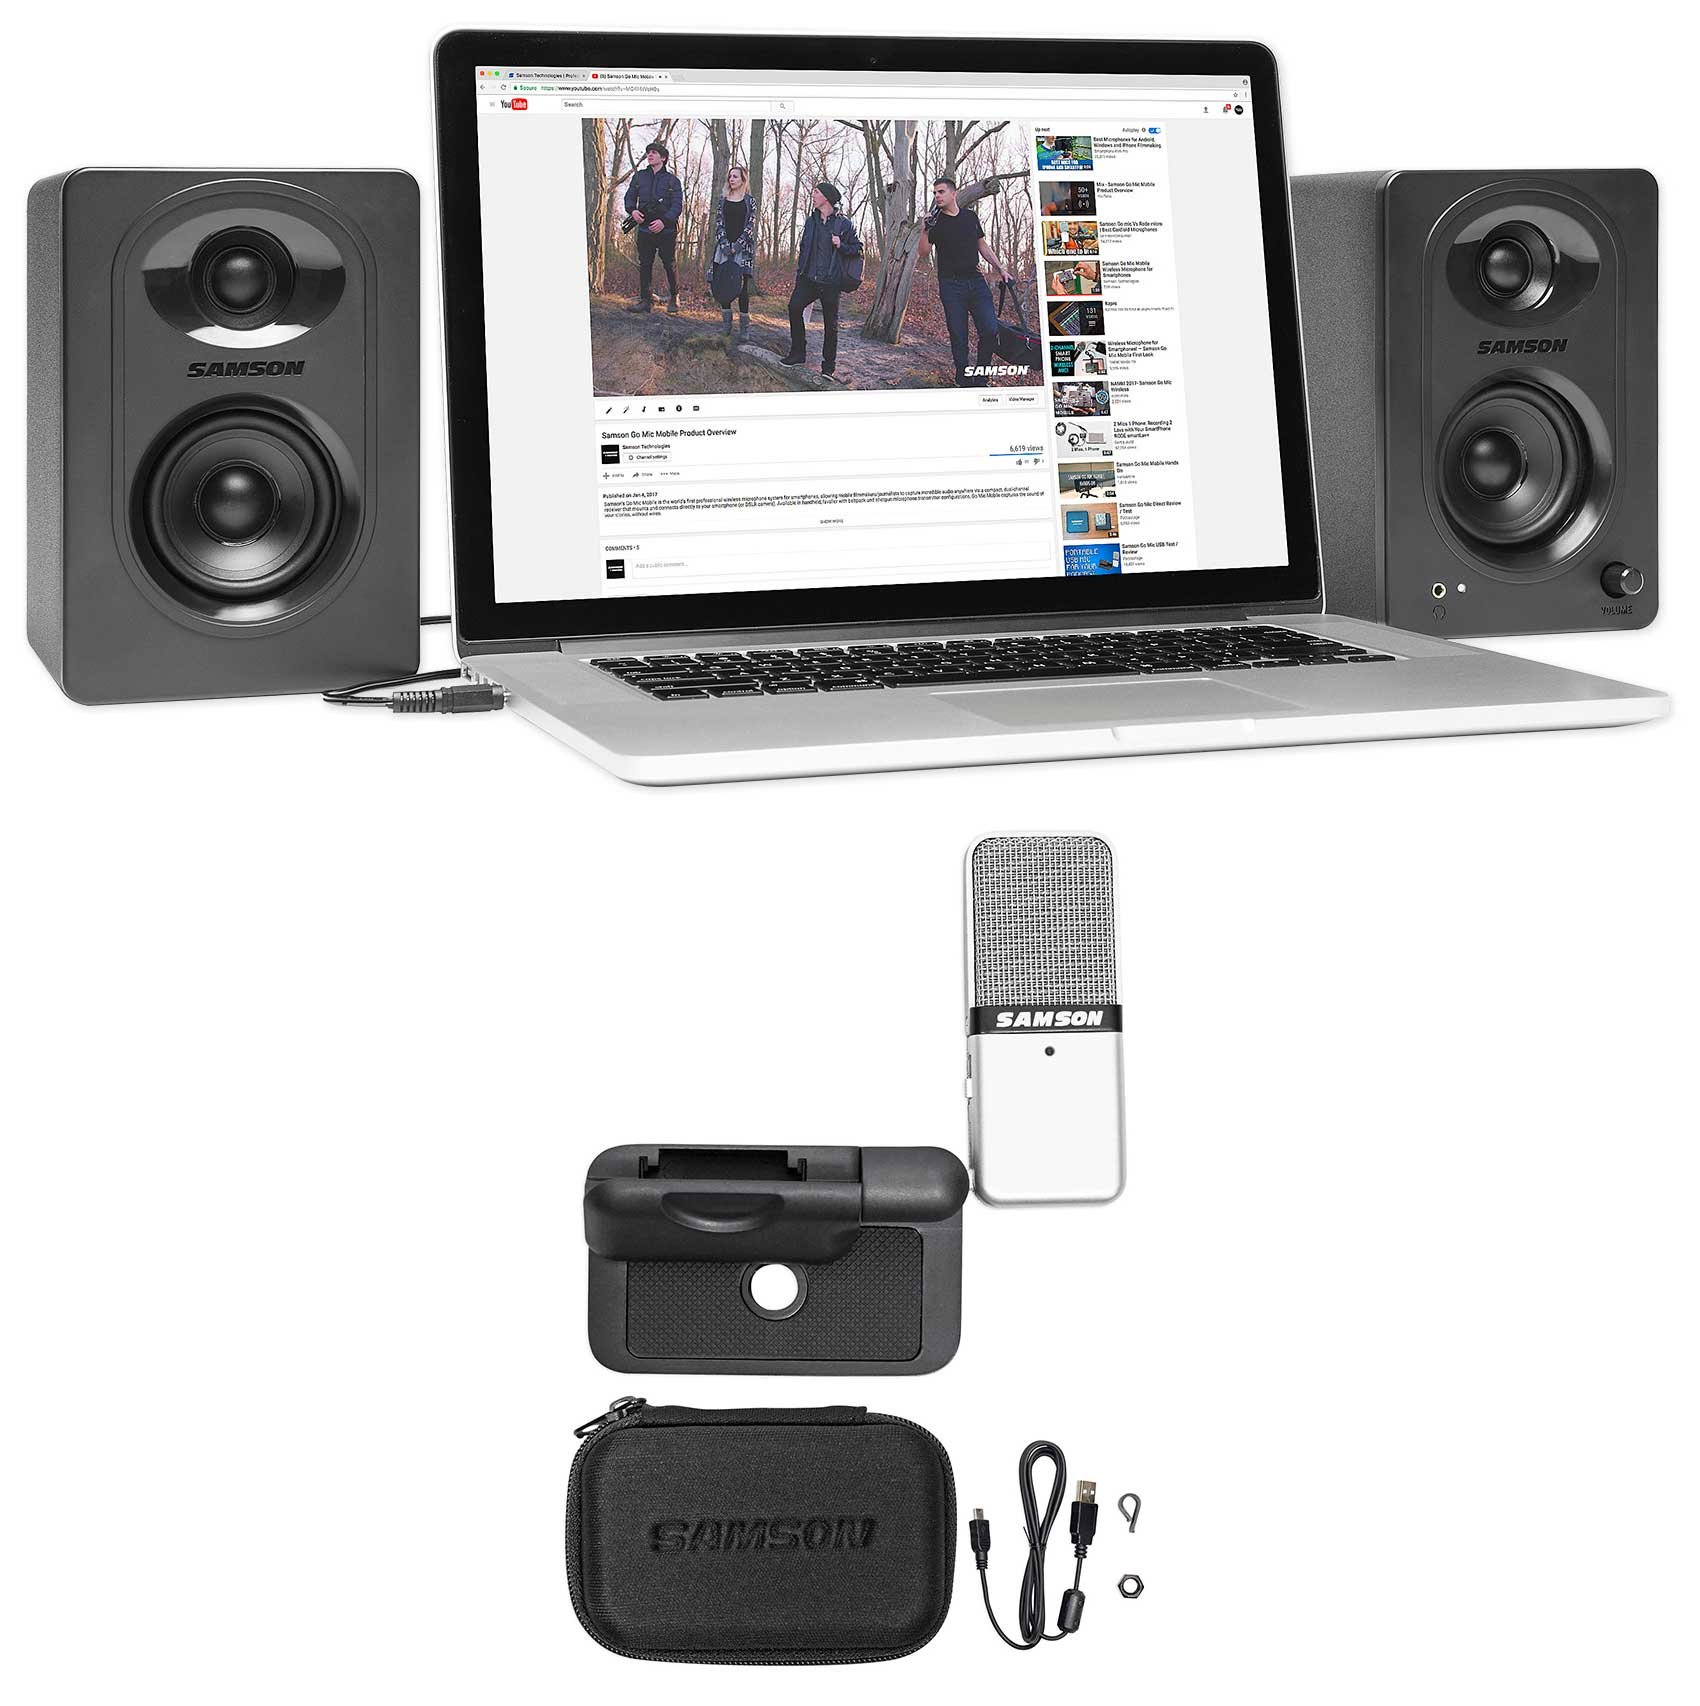 2) SAMSON M30 Powered Studio/Computer/Podcast Monitors Speakers+Microphone